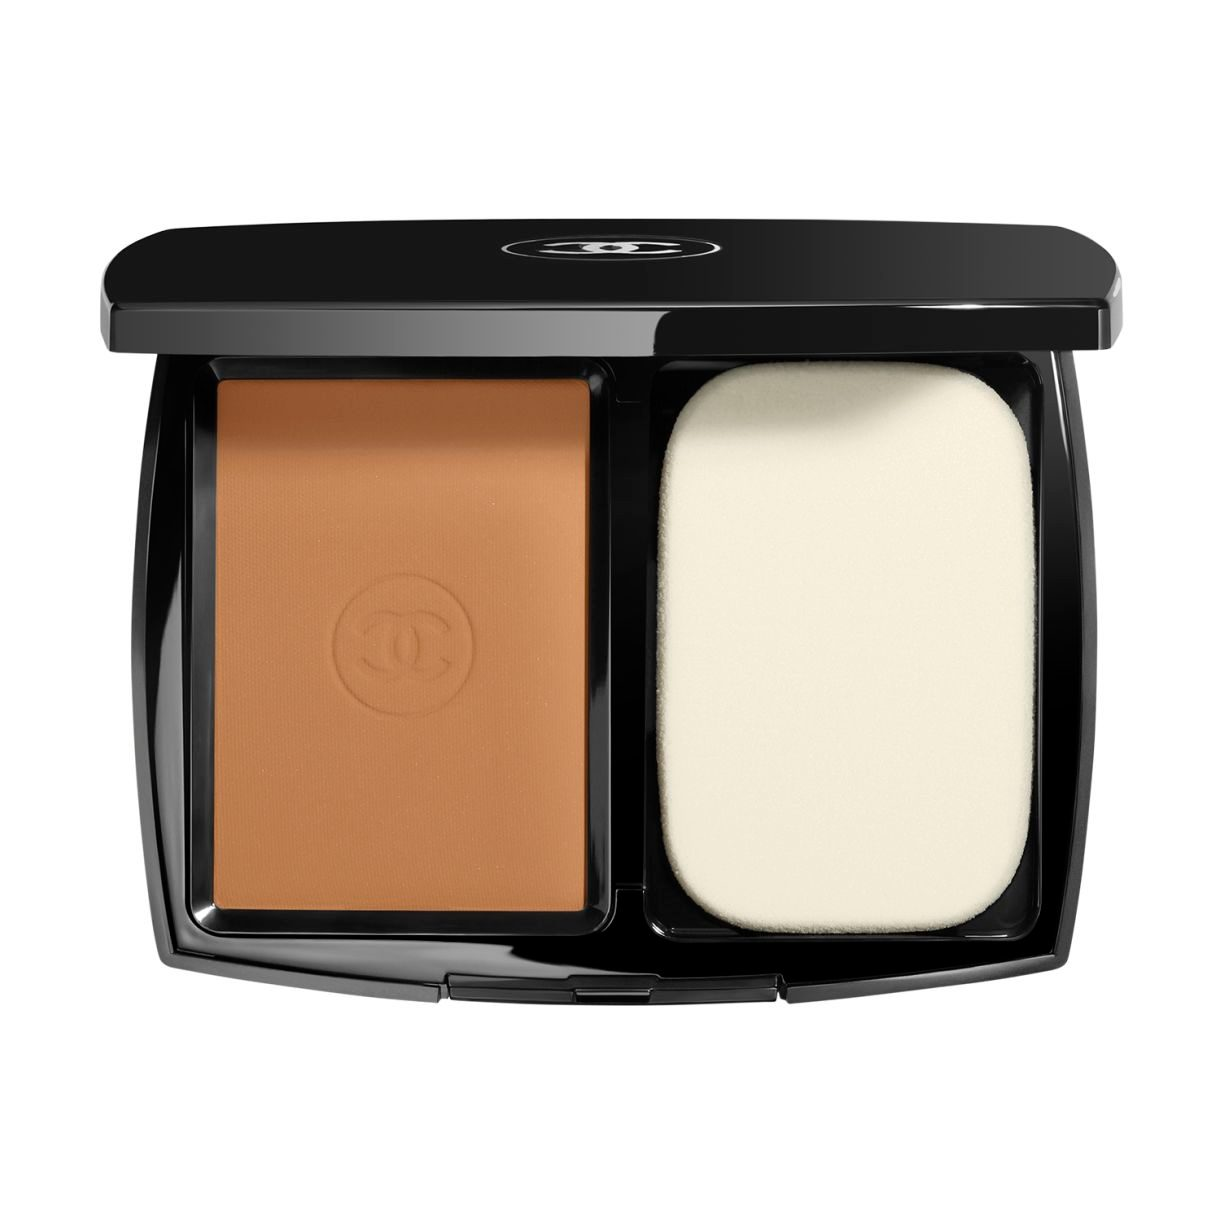 LE TEINT ULTRA TENUE ULTRAWEAR FLAWLESS COMPACT FOUNDATION 121 CARAMEL 13G